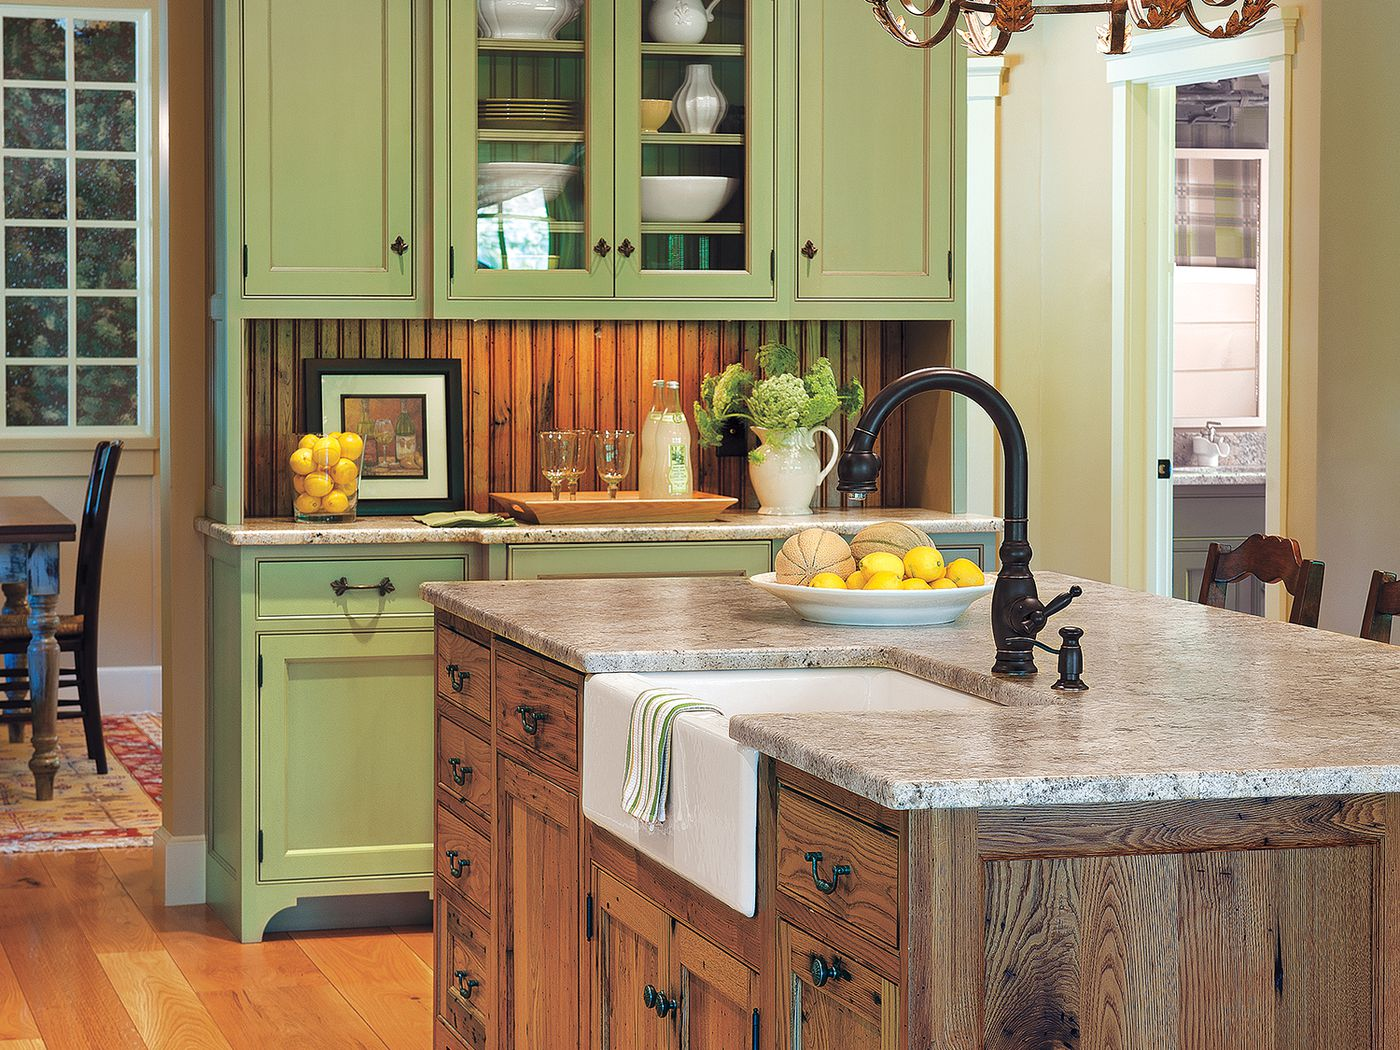 Picture of: All About Kitchen Islands This Old House